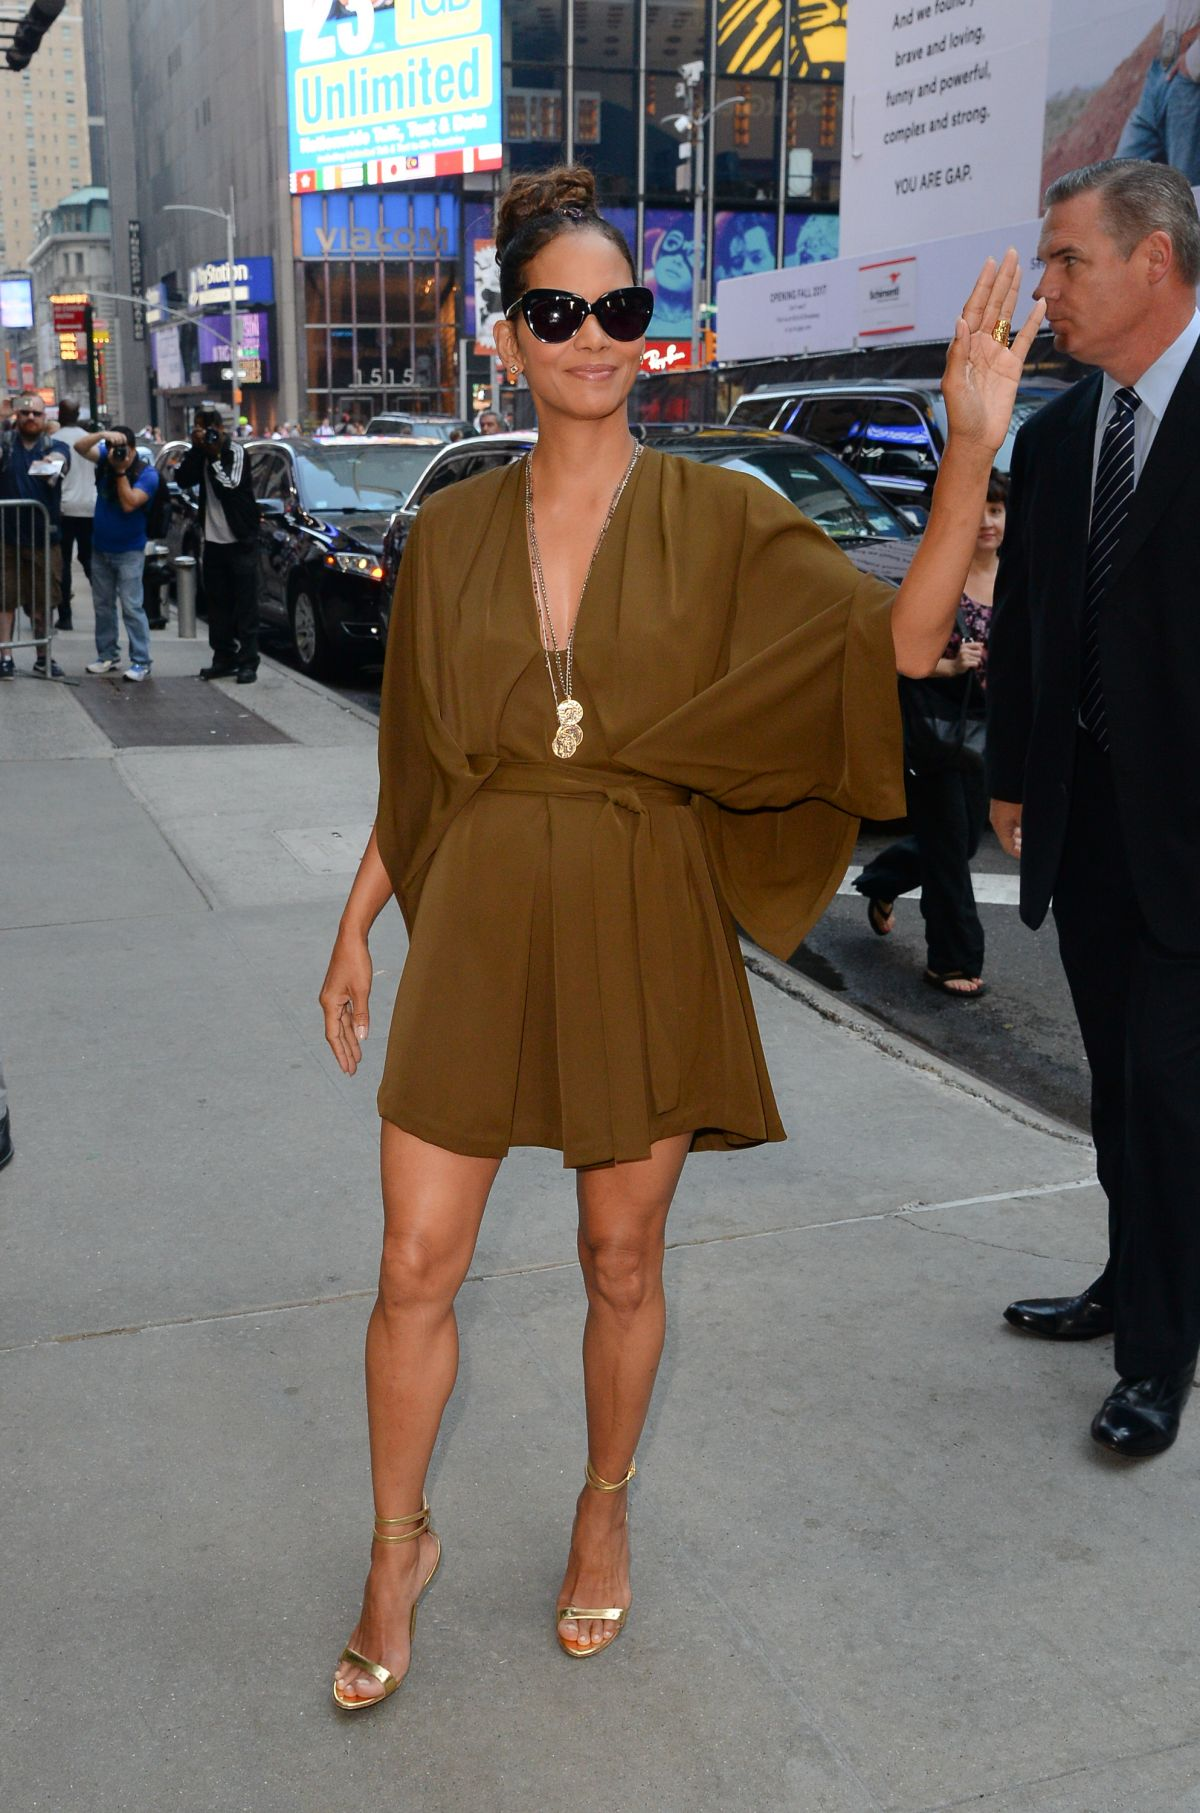 Good Morning America New York : Halle berry at good morning america studios in new york